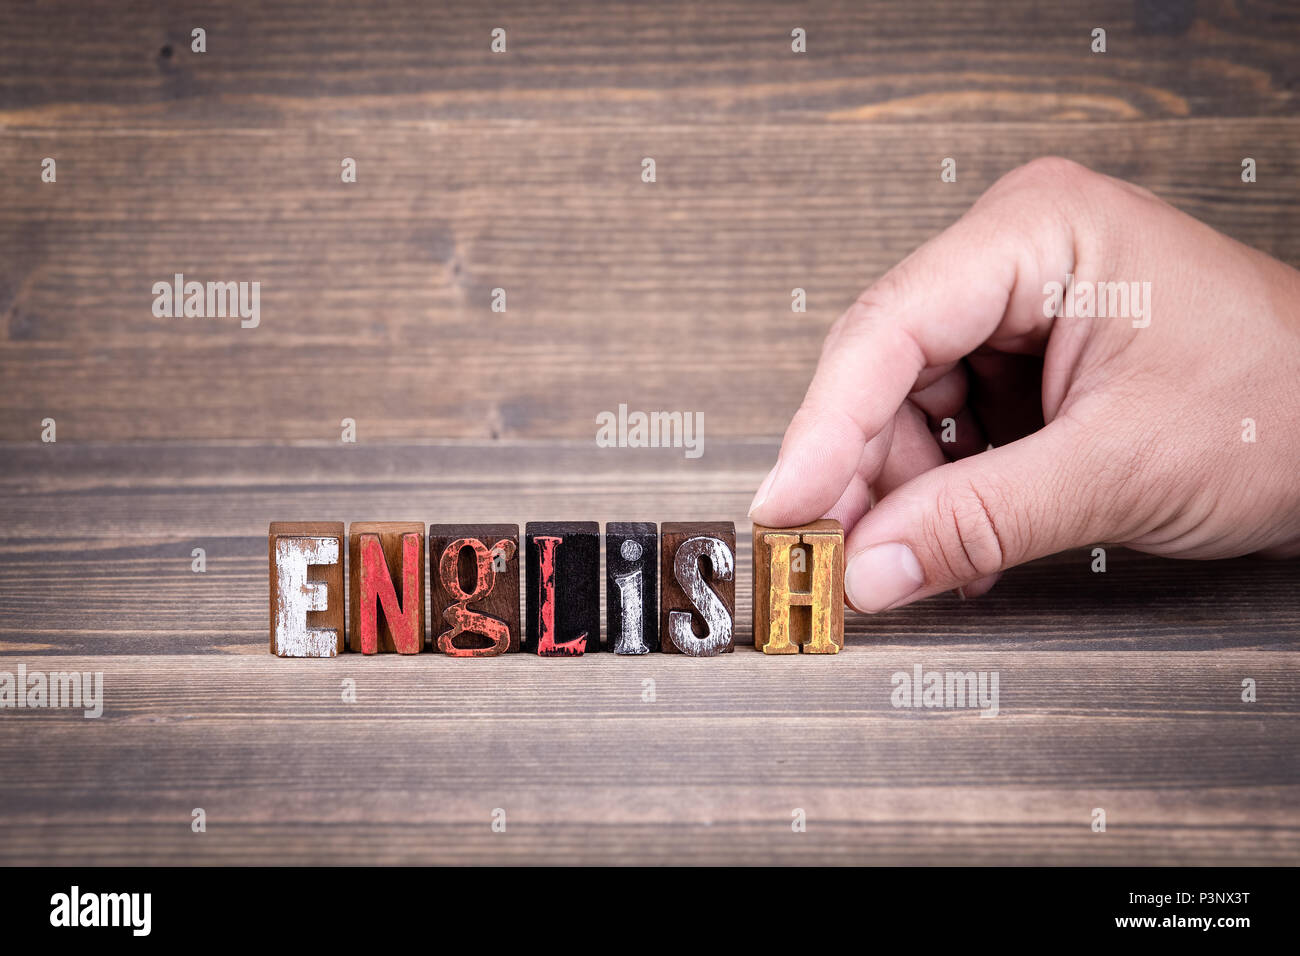 English, education and business concept - Stock Image